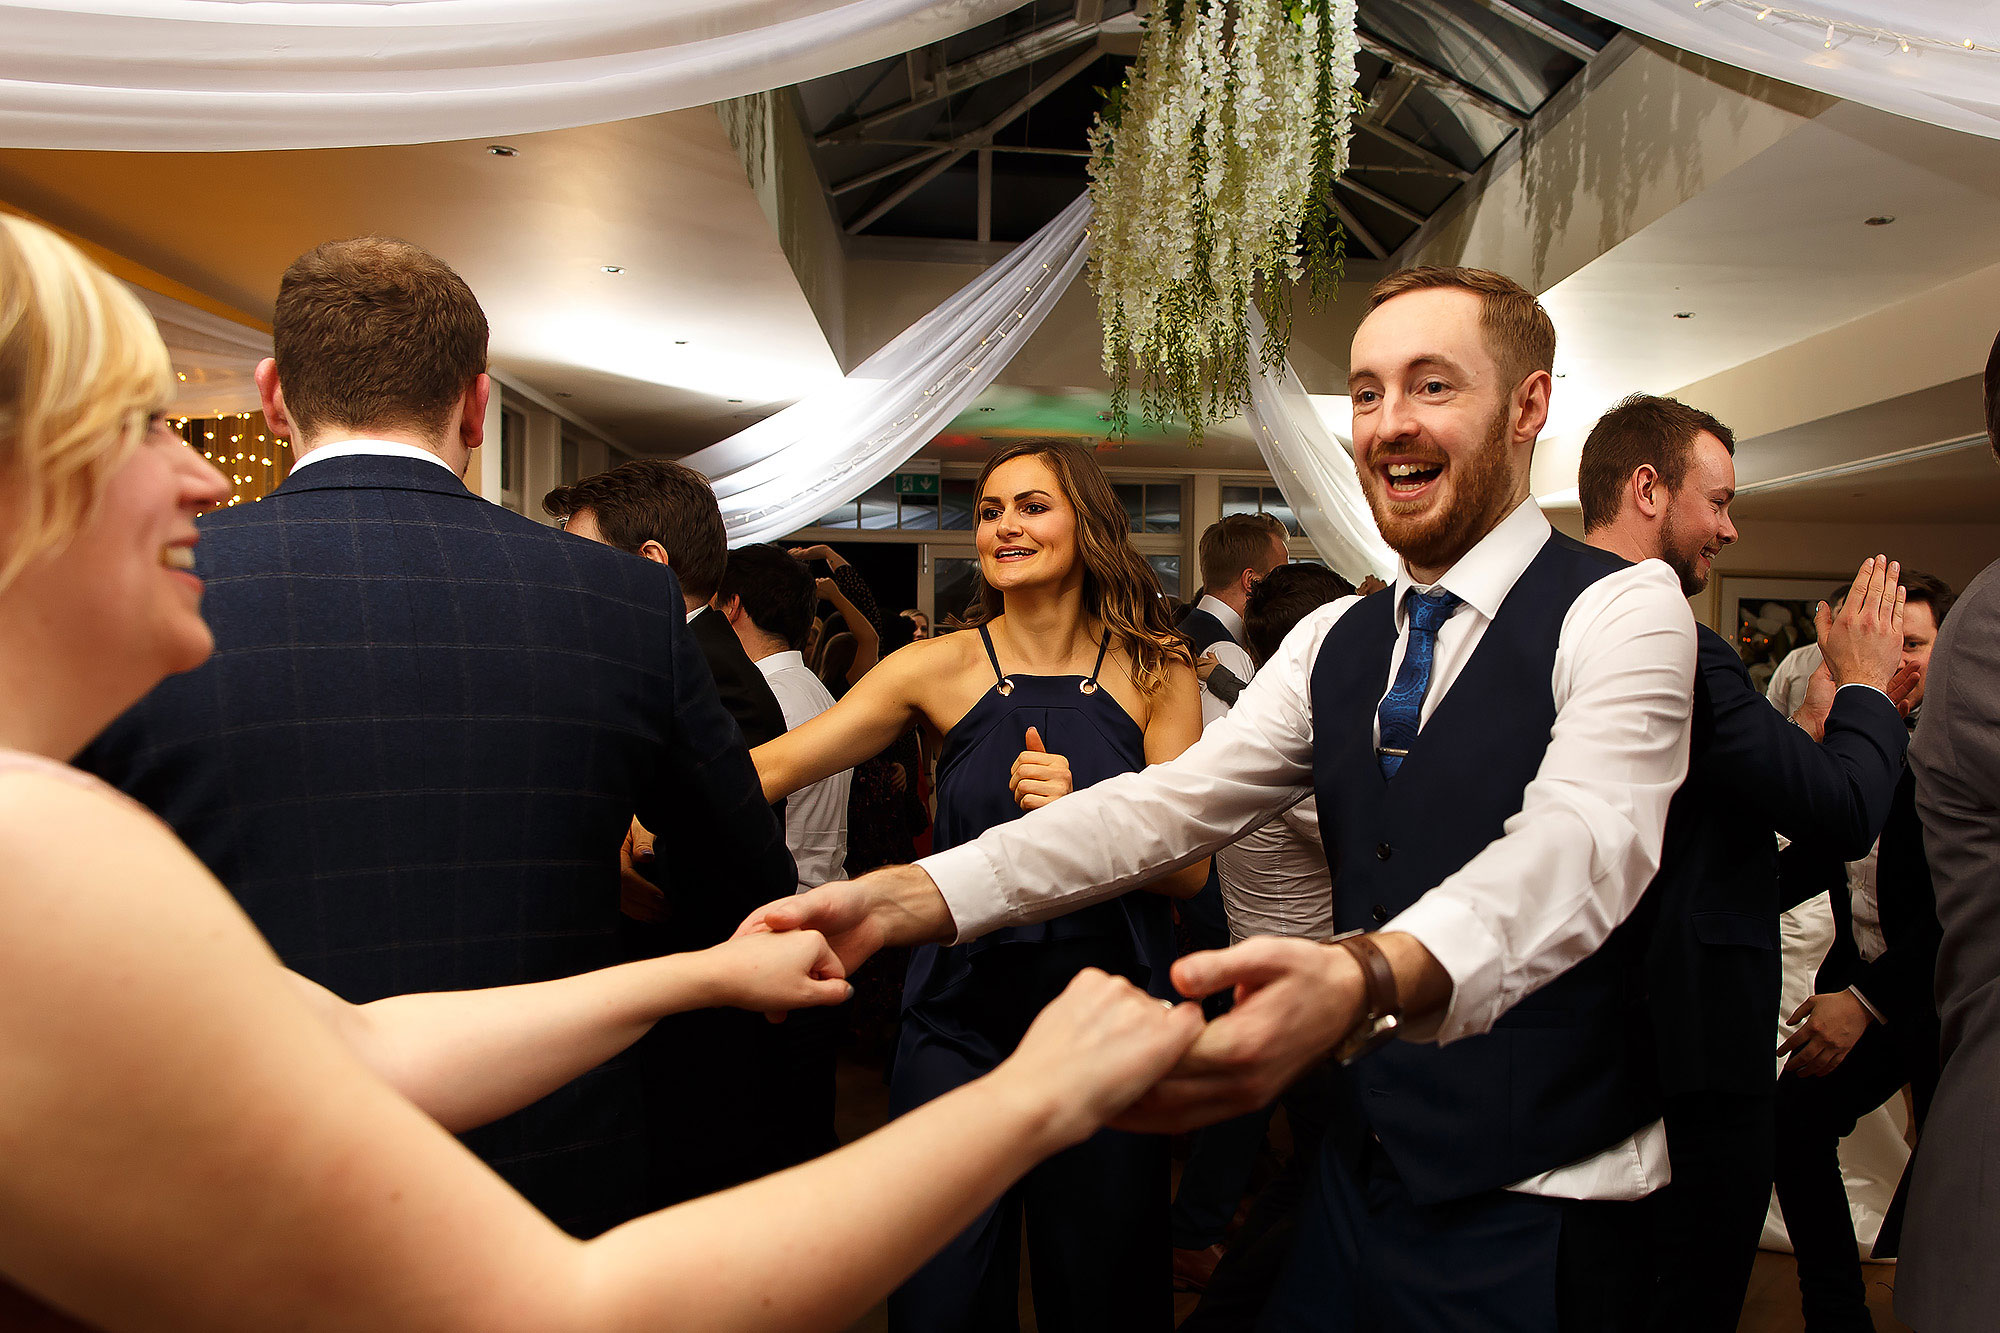 Wedding guests enjoying the ceilidh dancing | Mitton Hall wedding photographs by Toni Darcy Photography